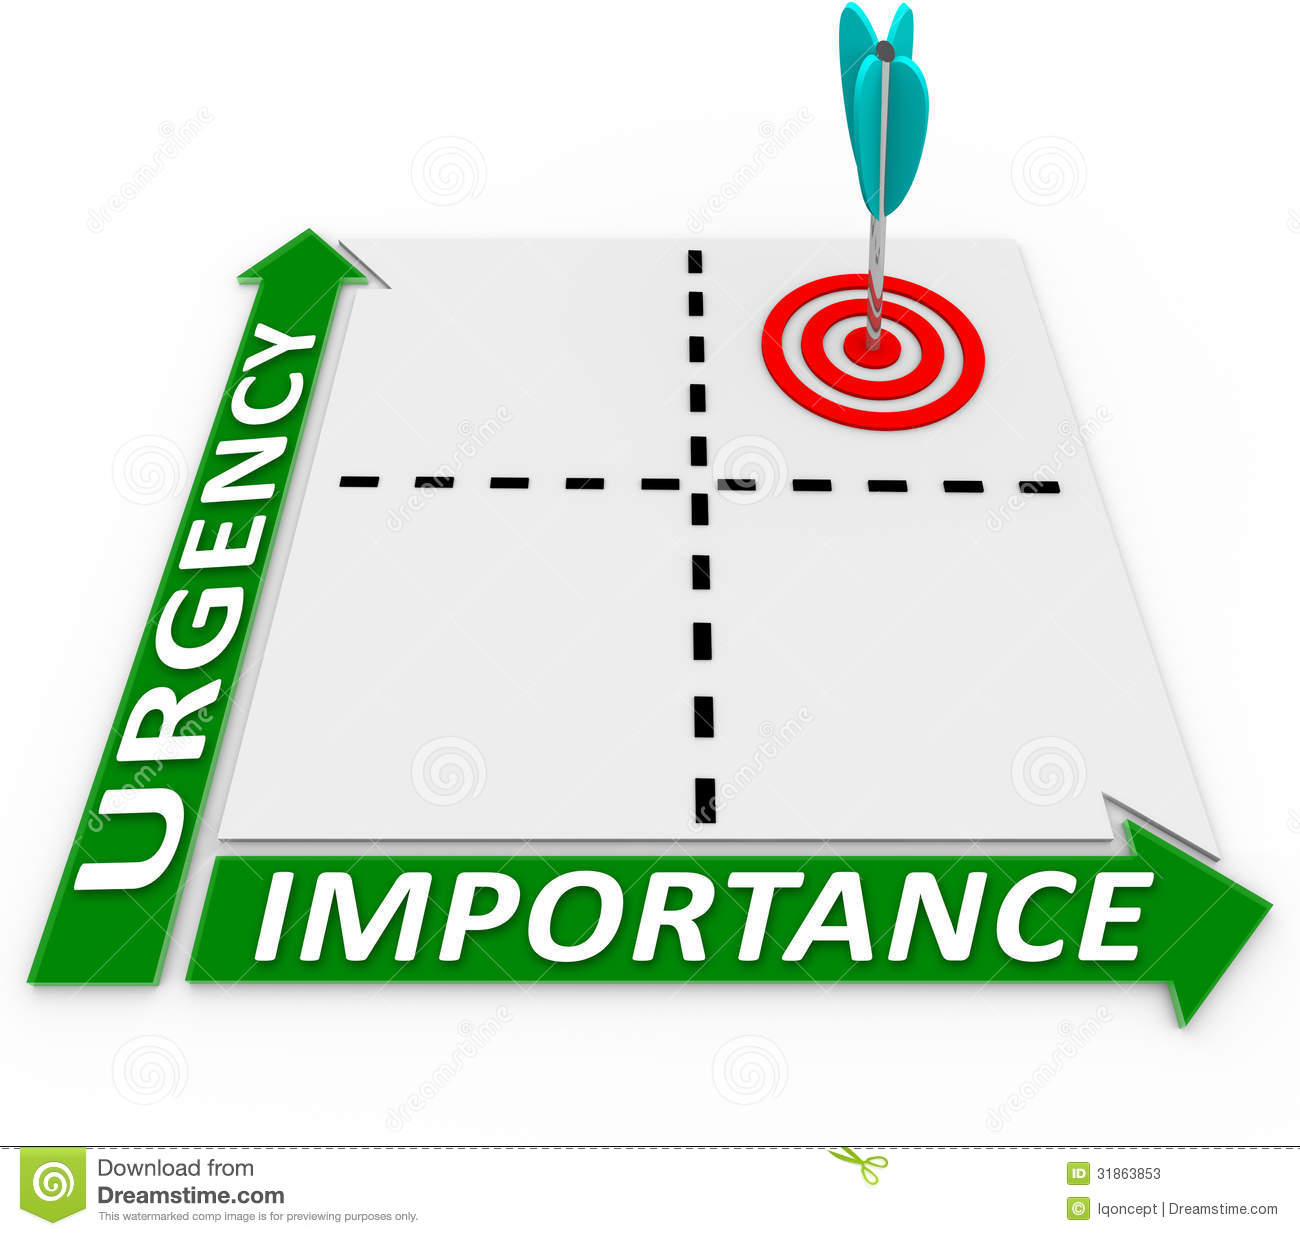 Focus on the things that are high in urgency as well as importance by ...